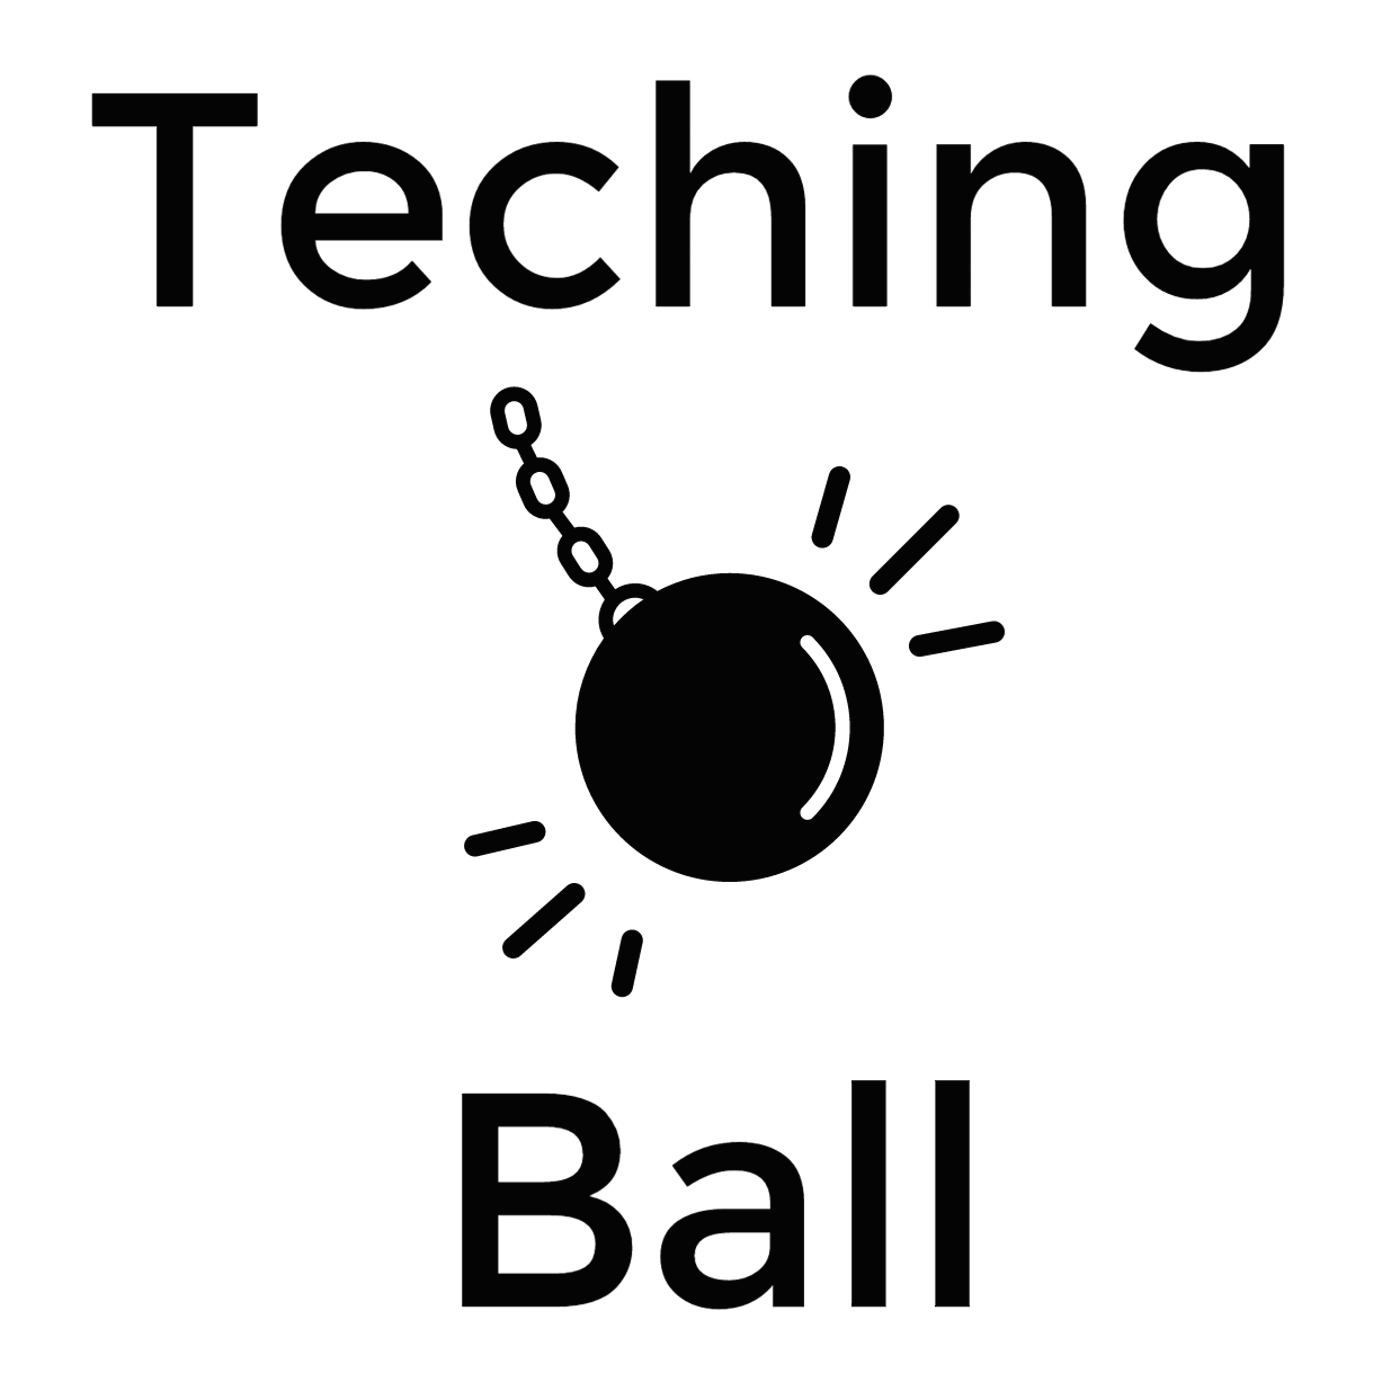 Teching Ball